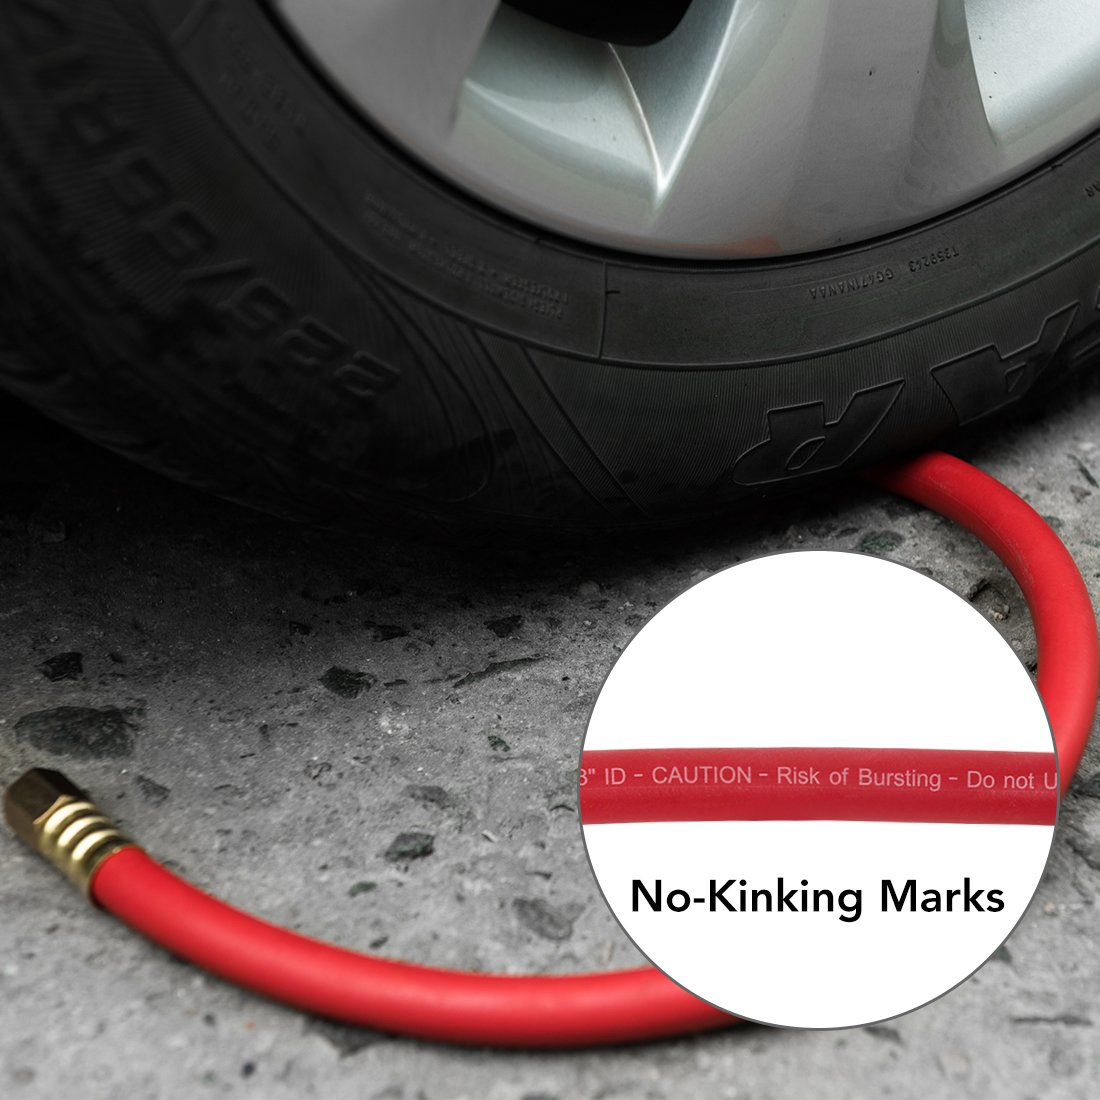 Non-Kinking Rubber Lead-In Air Hose 3/8inch x 3FT 300PSI With 1/4inch Solid Brass Swivel Fittings Red by Maxaline (Image #7)